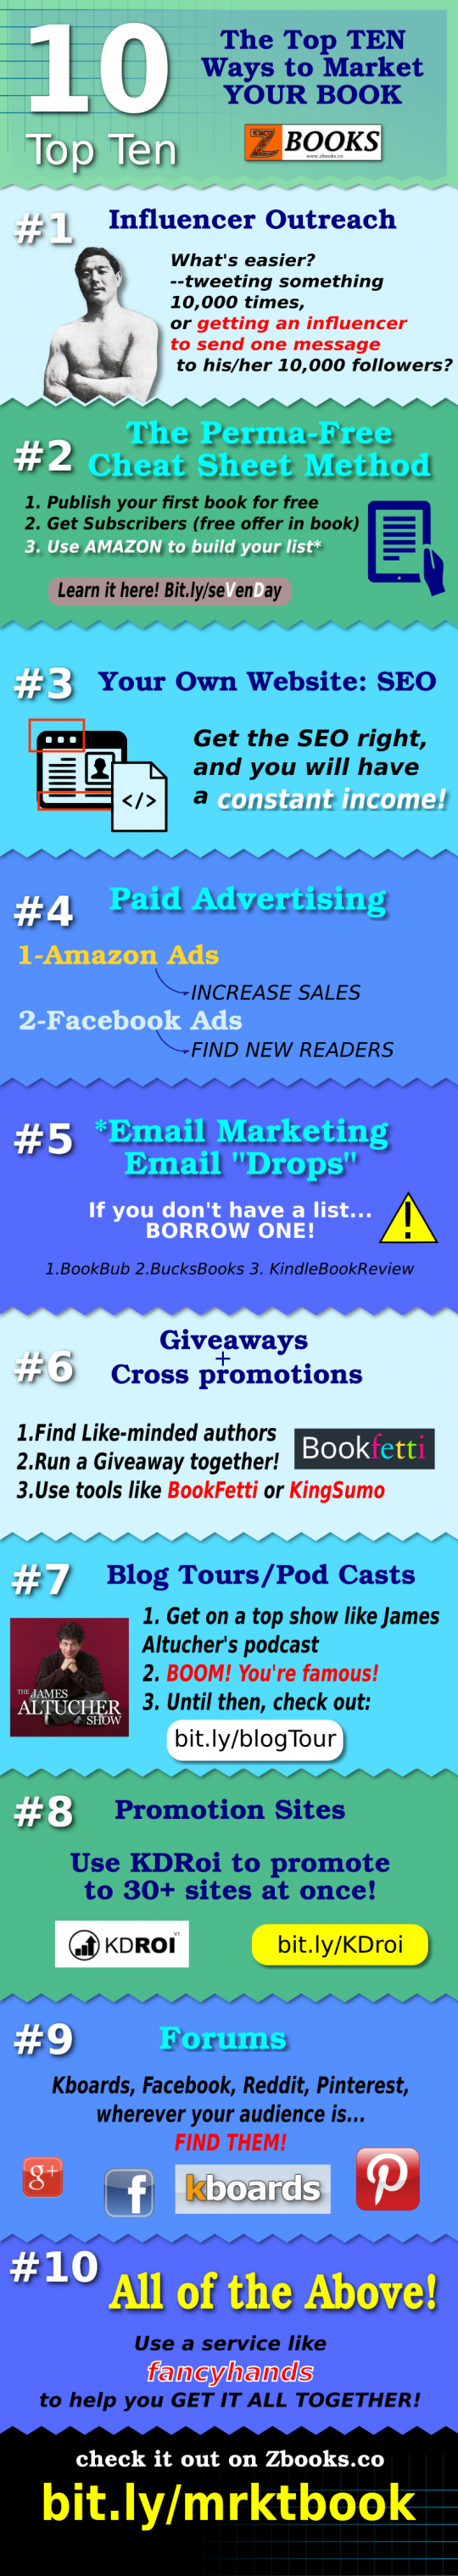 The Top Ten Ways to Market Your Book!